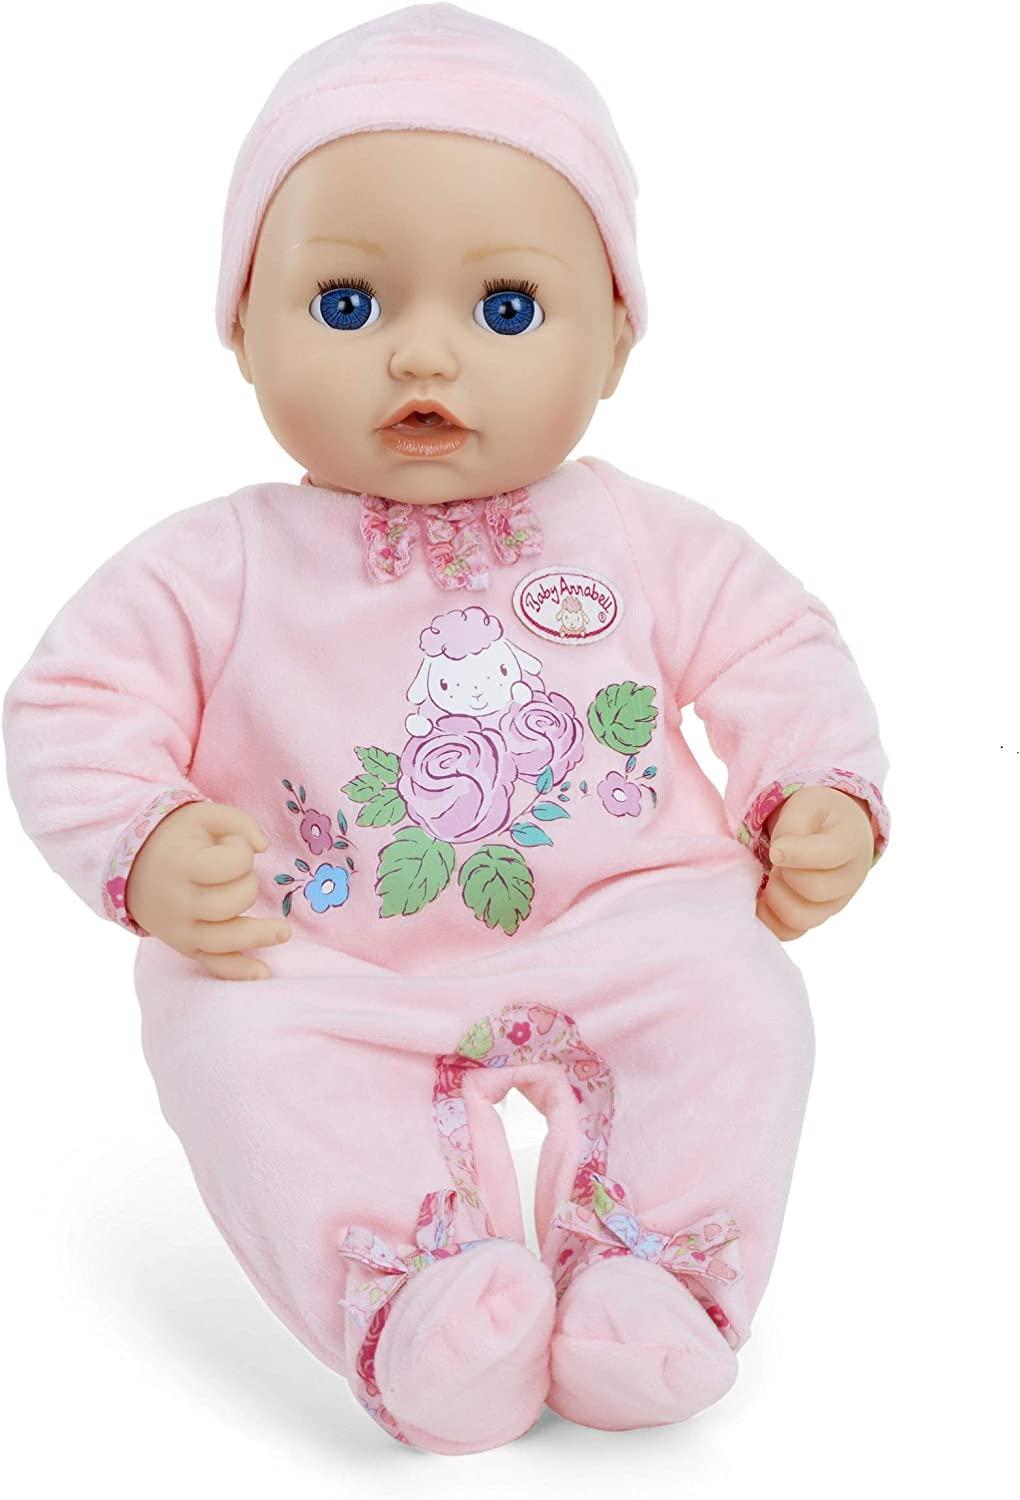 Baby Annabell Clothes Amazon - Baby Cloths